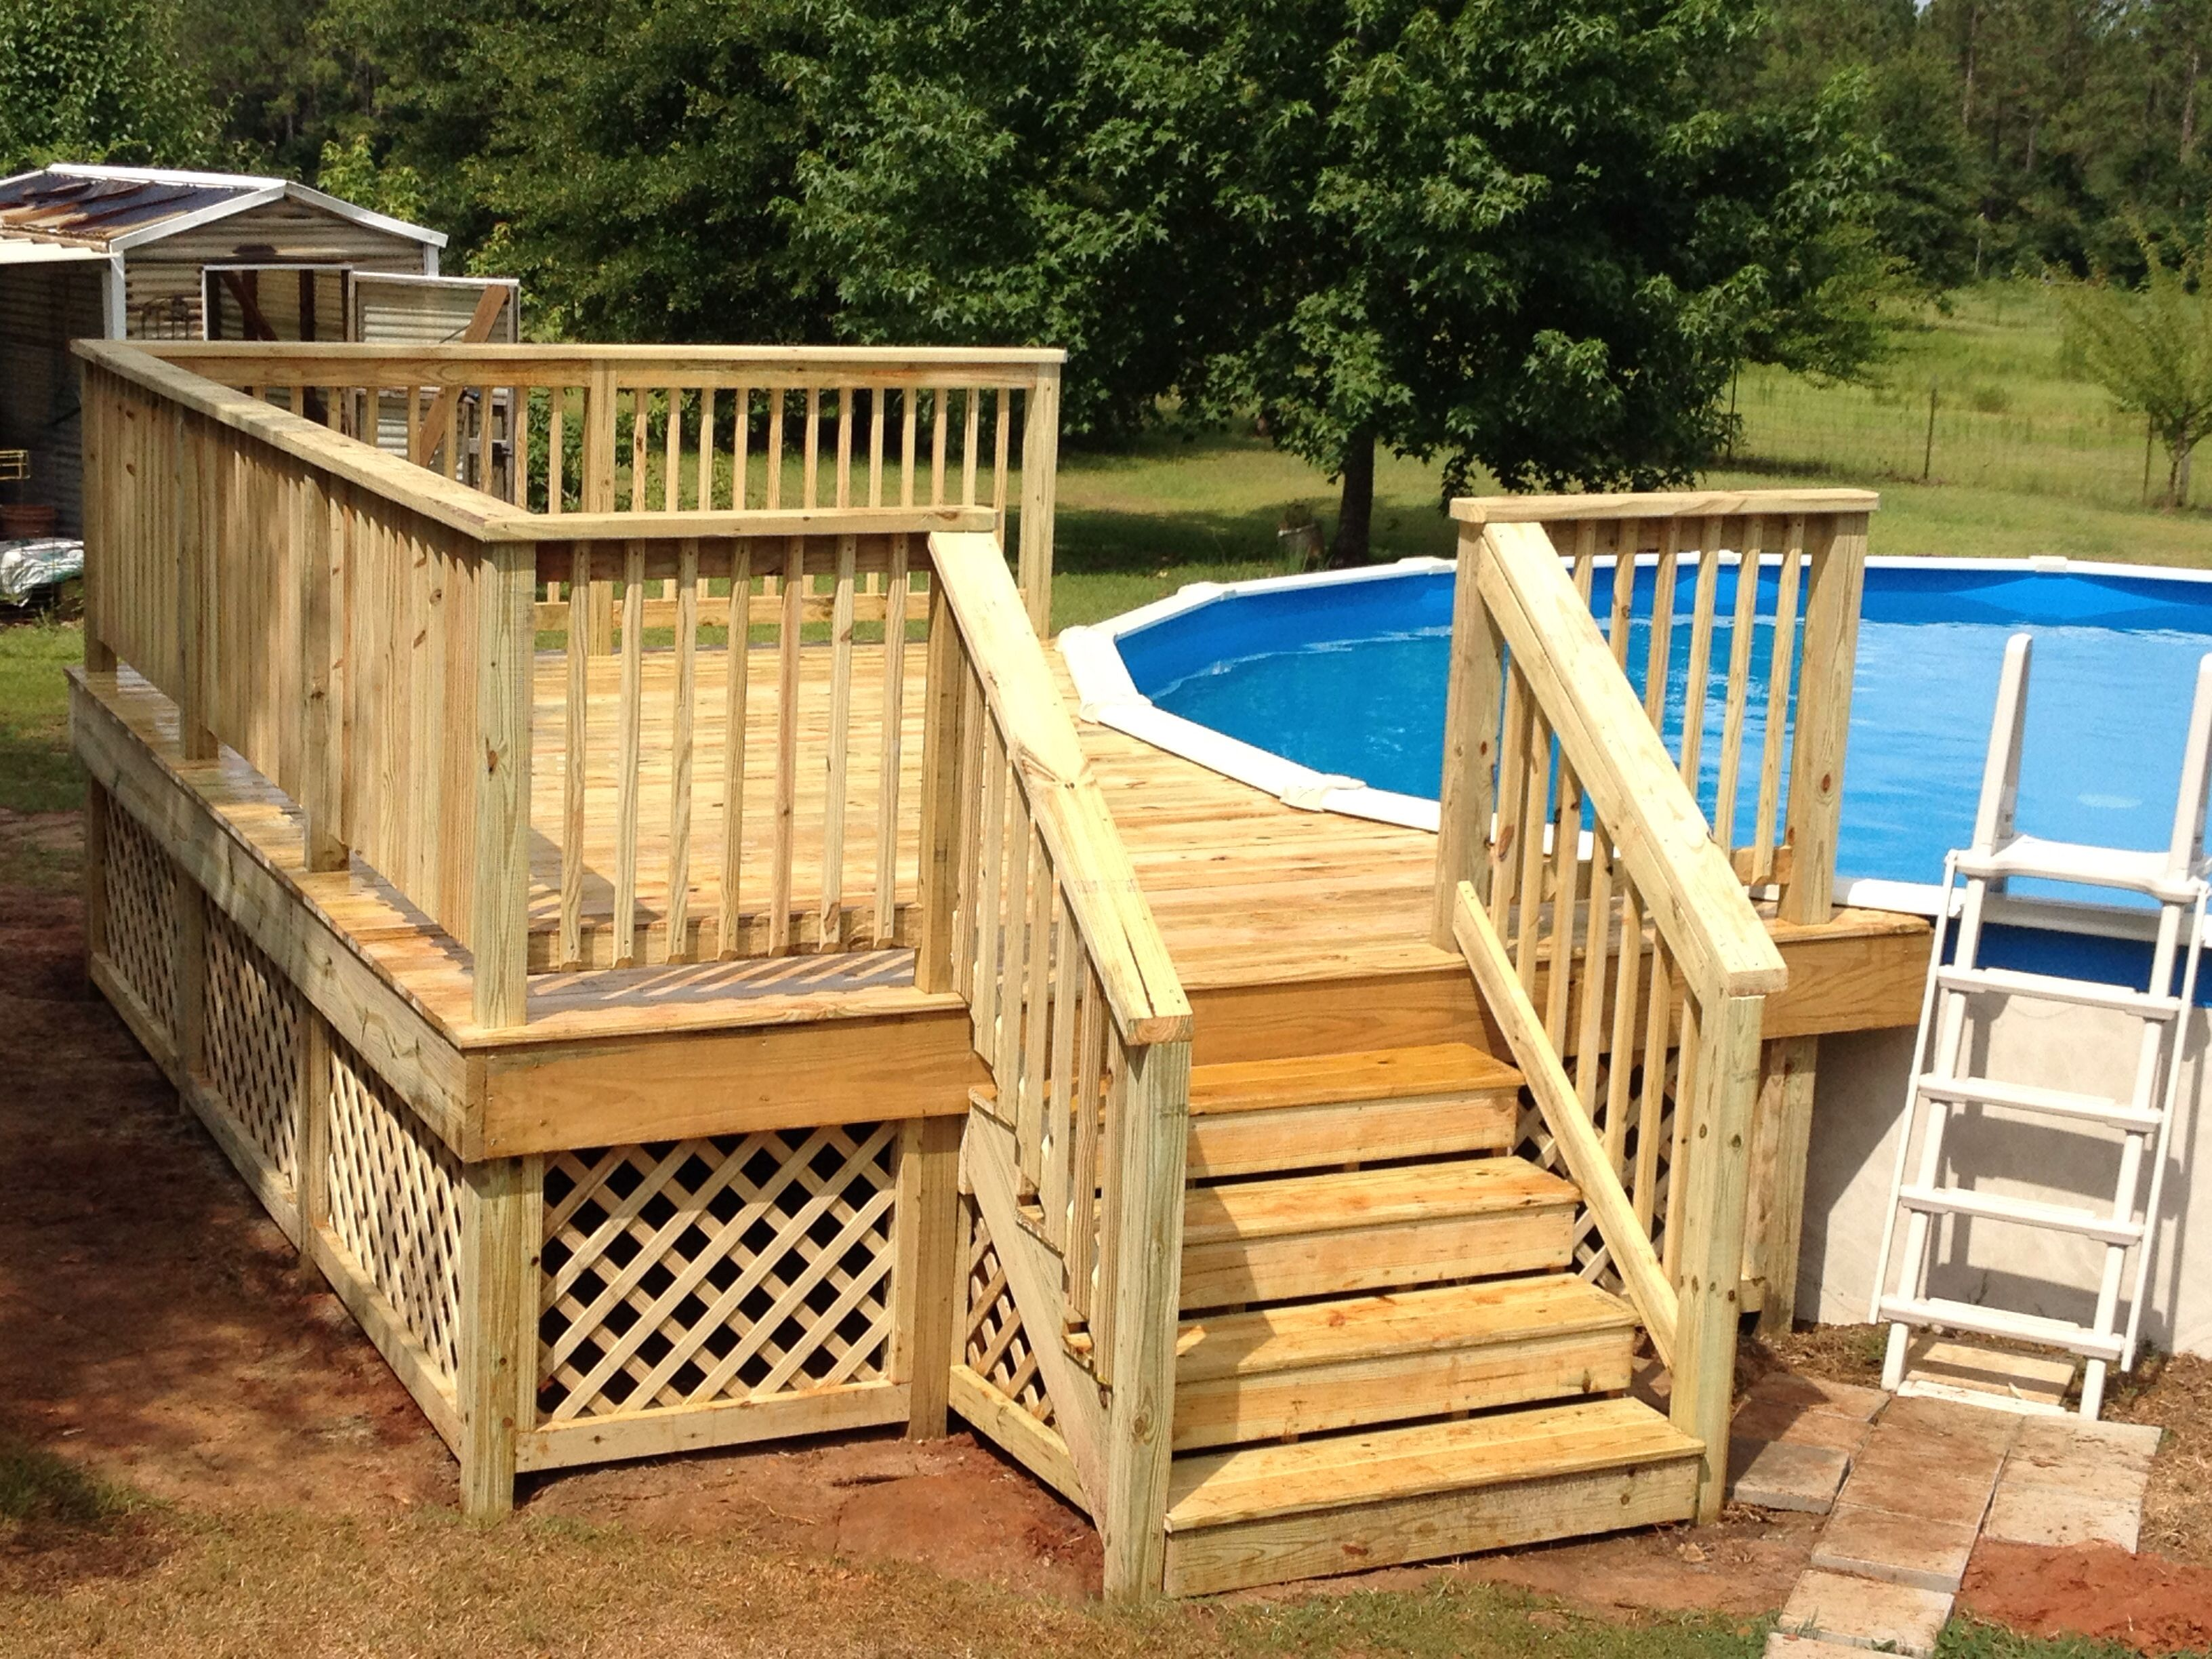 12x16 deck on round pool my projects pinterest for Deck plans for above ground pools